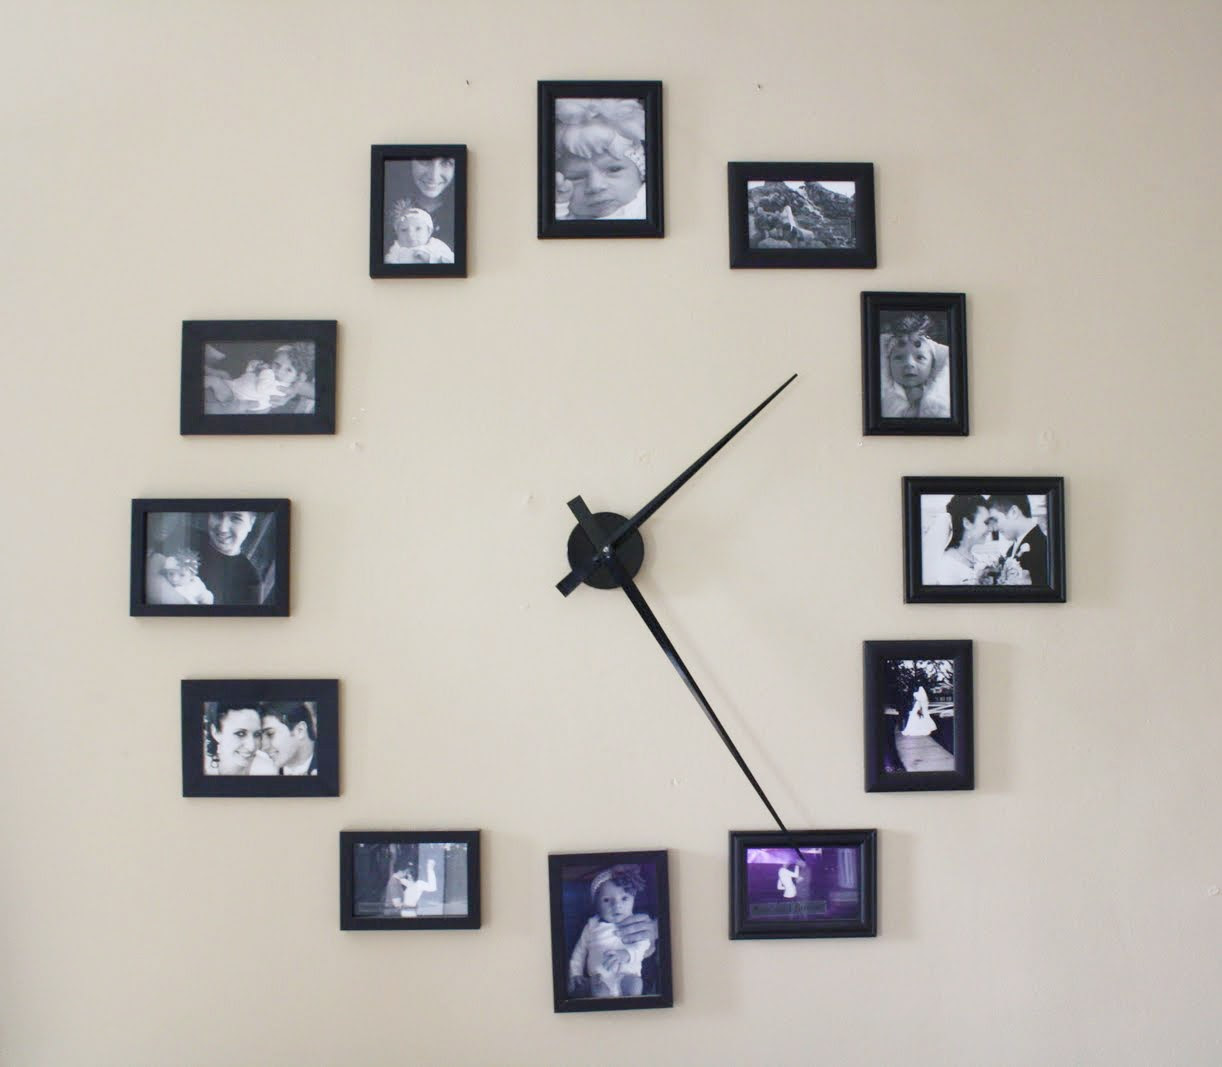 Diy Photo Frame Clock 1mhowtocom